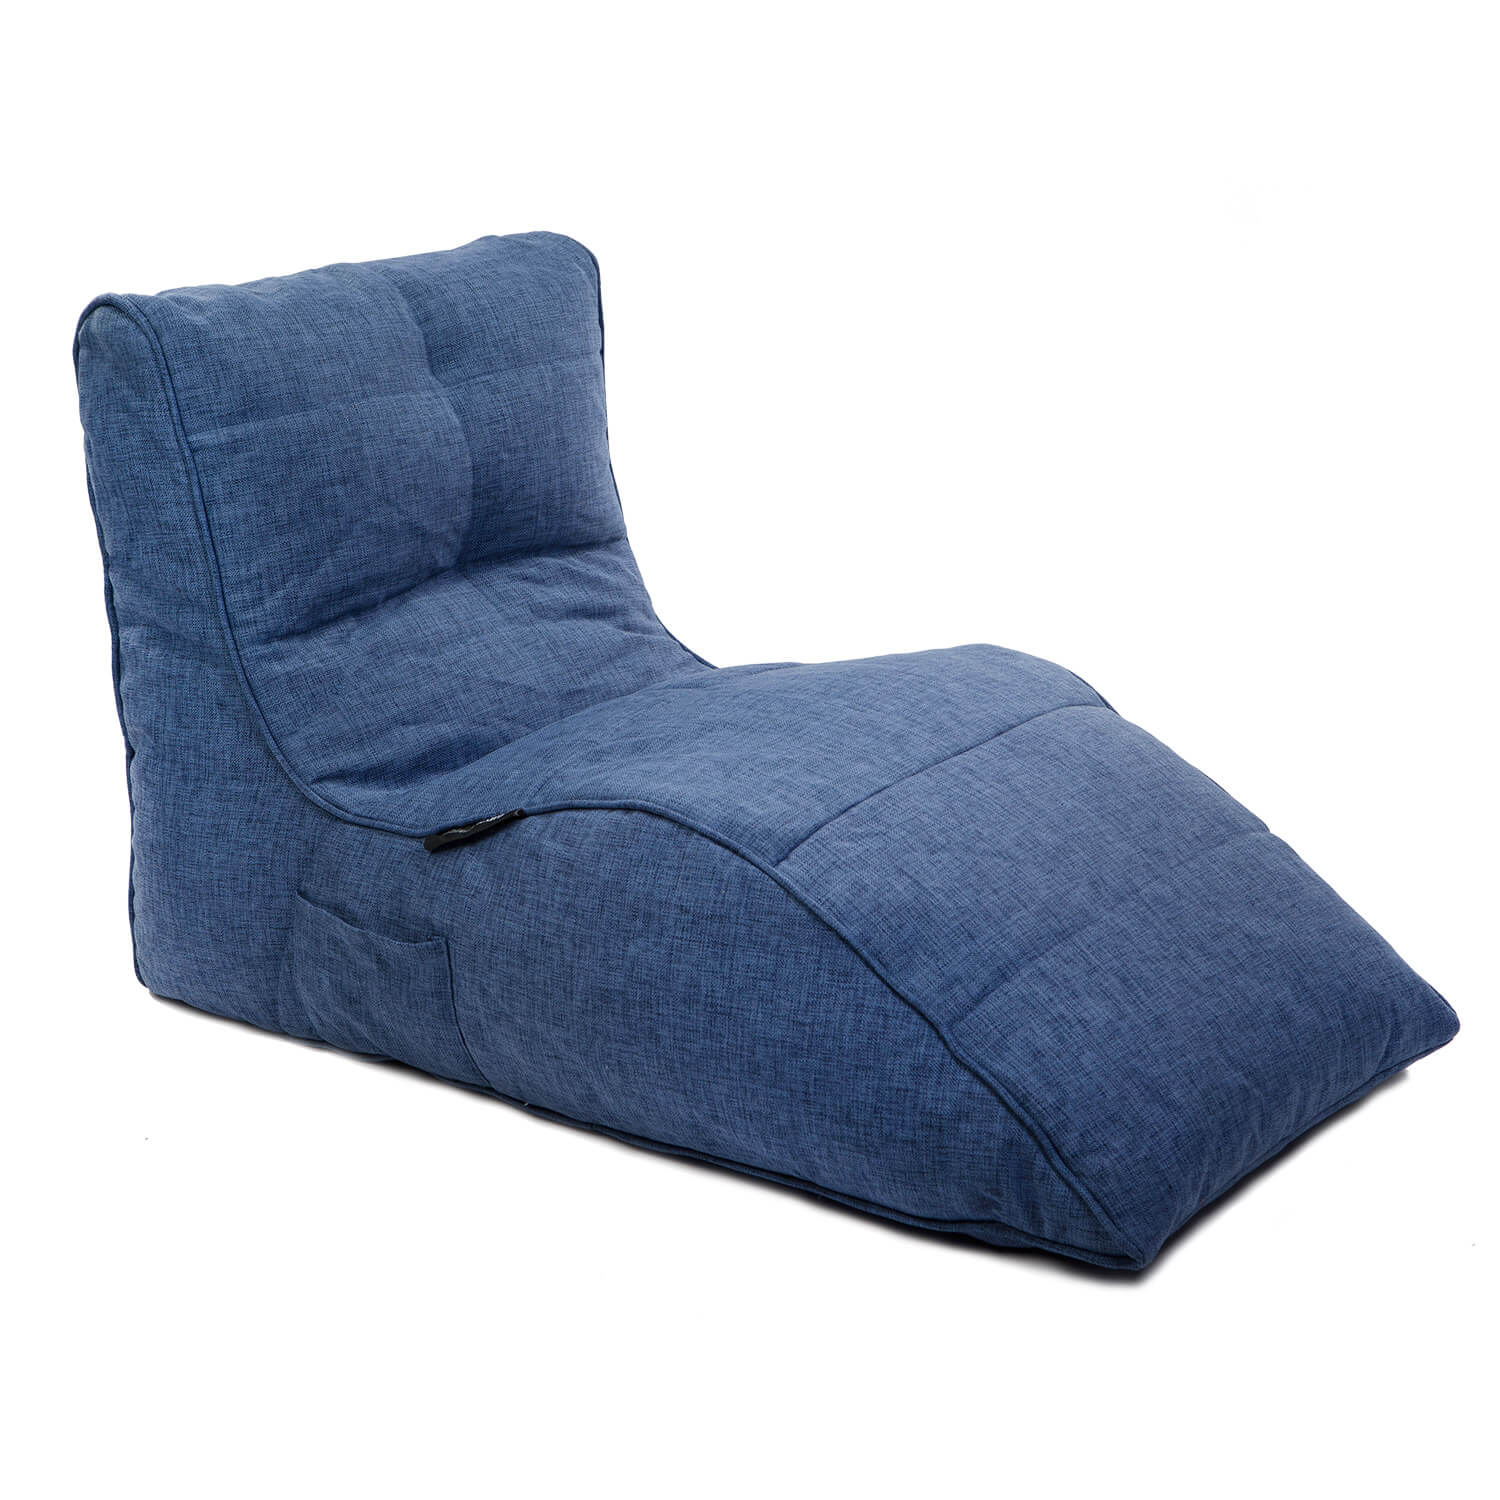 Home Cinema Indoor Bean Bag Avatar Lounger Blue Jazz